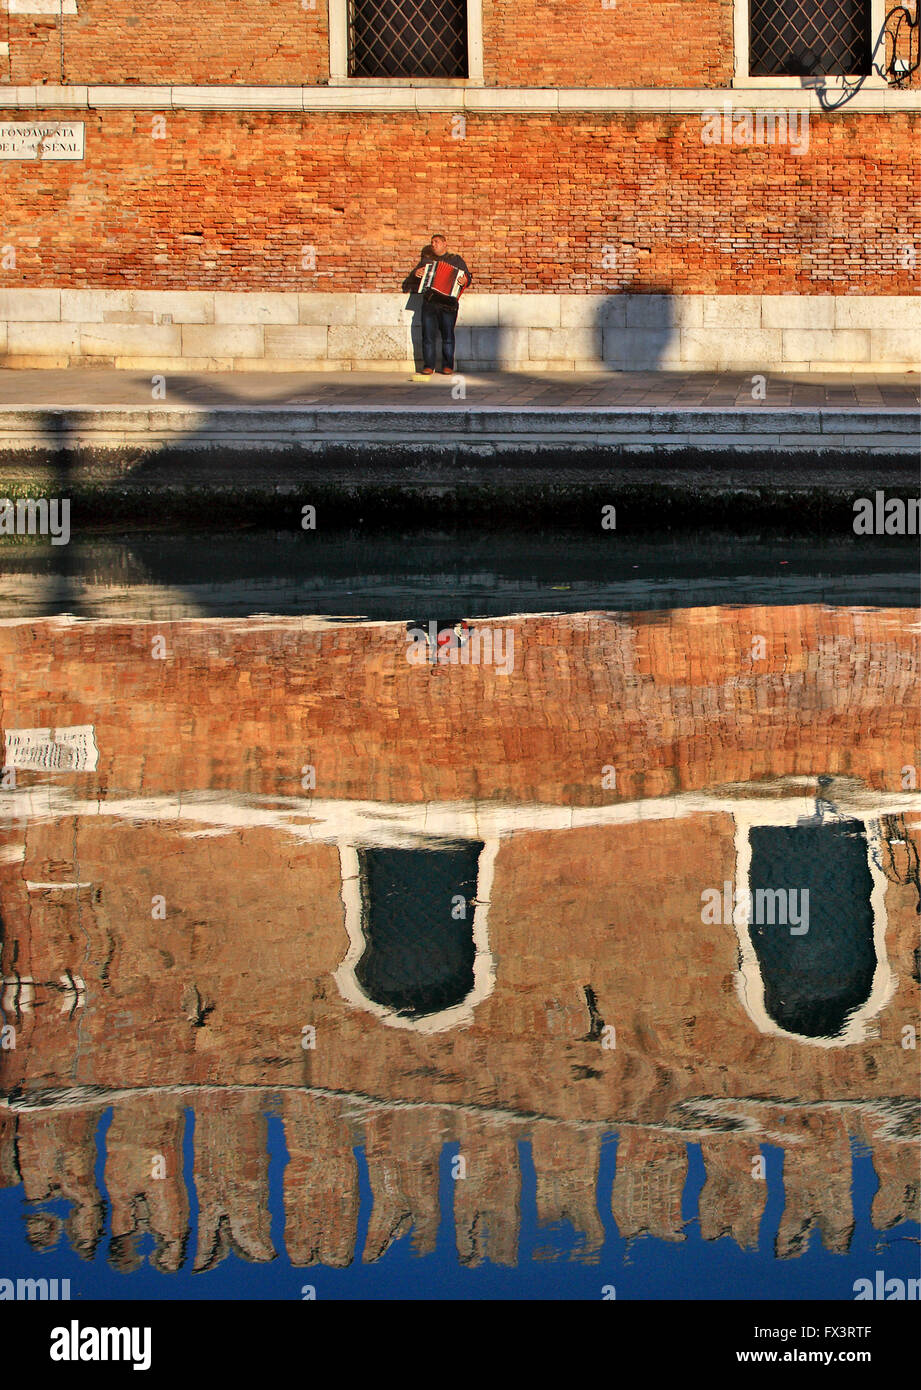 Accordion player outside the Arsenale (shipyards), Sestiere di Castello, Venezia (Venice), Italy. - Stock Image